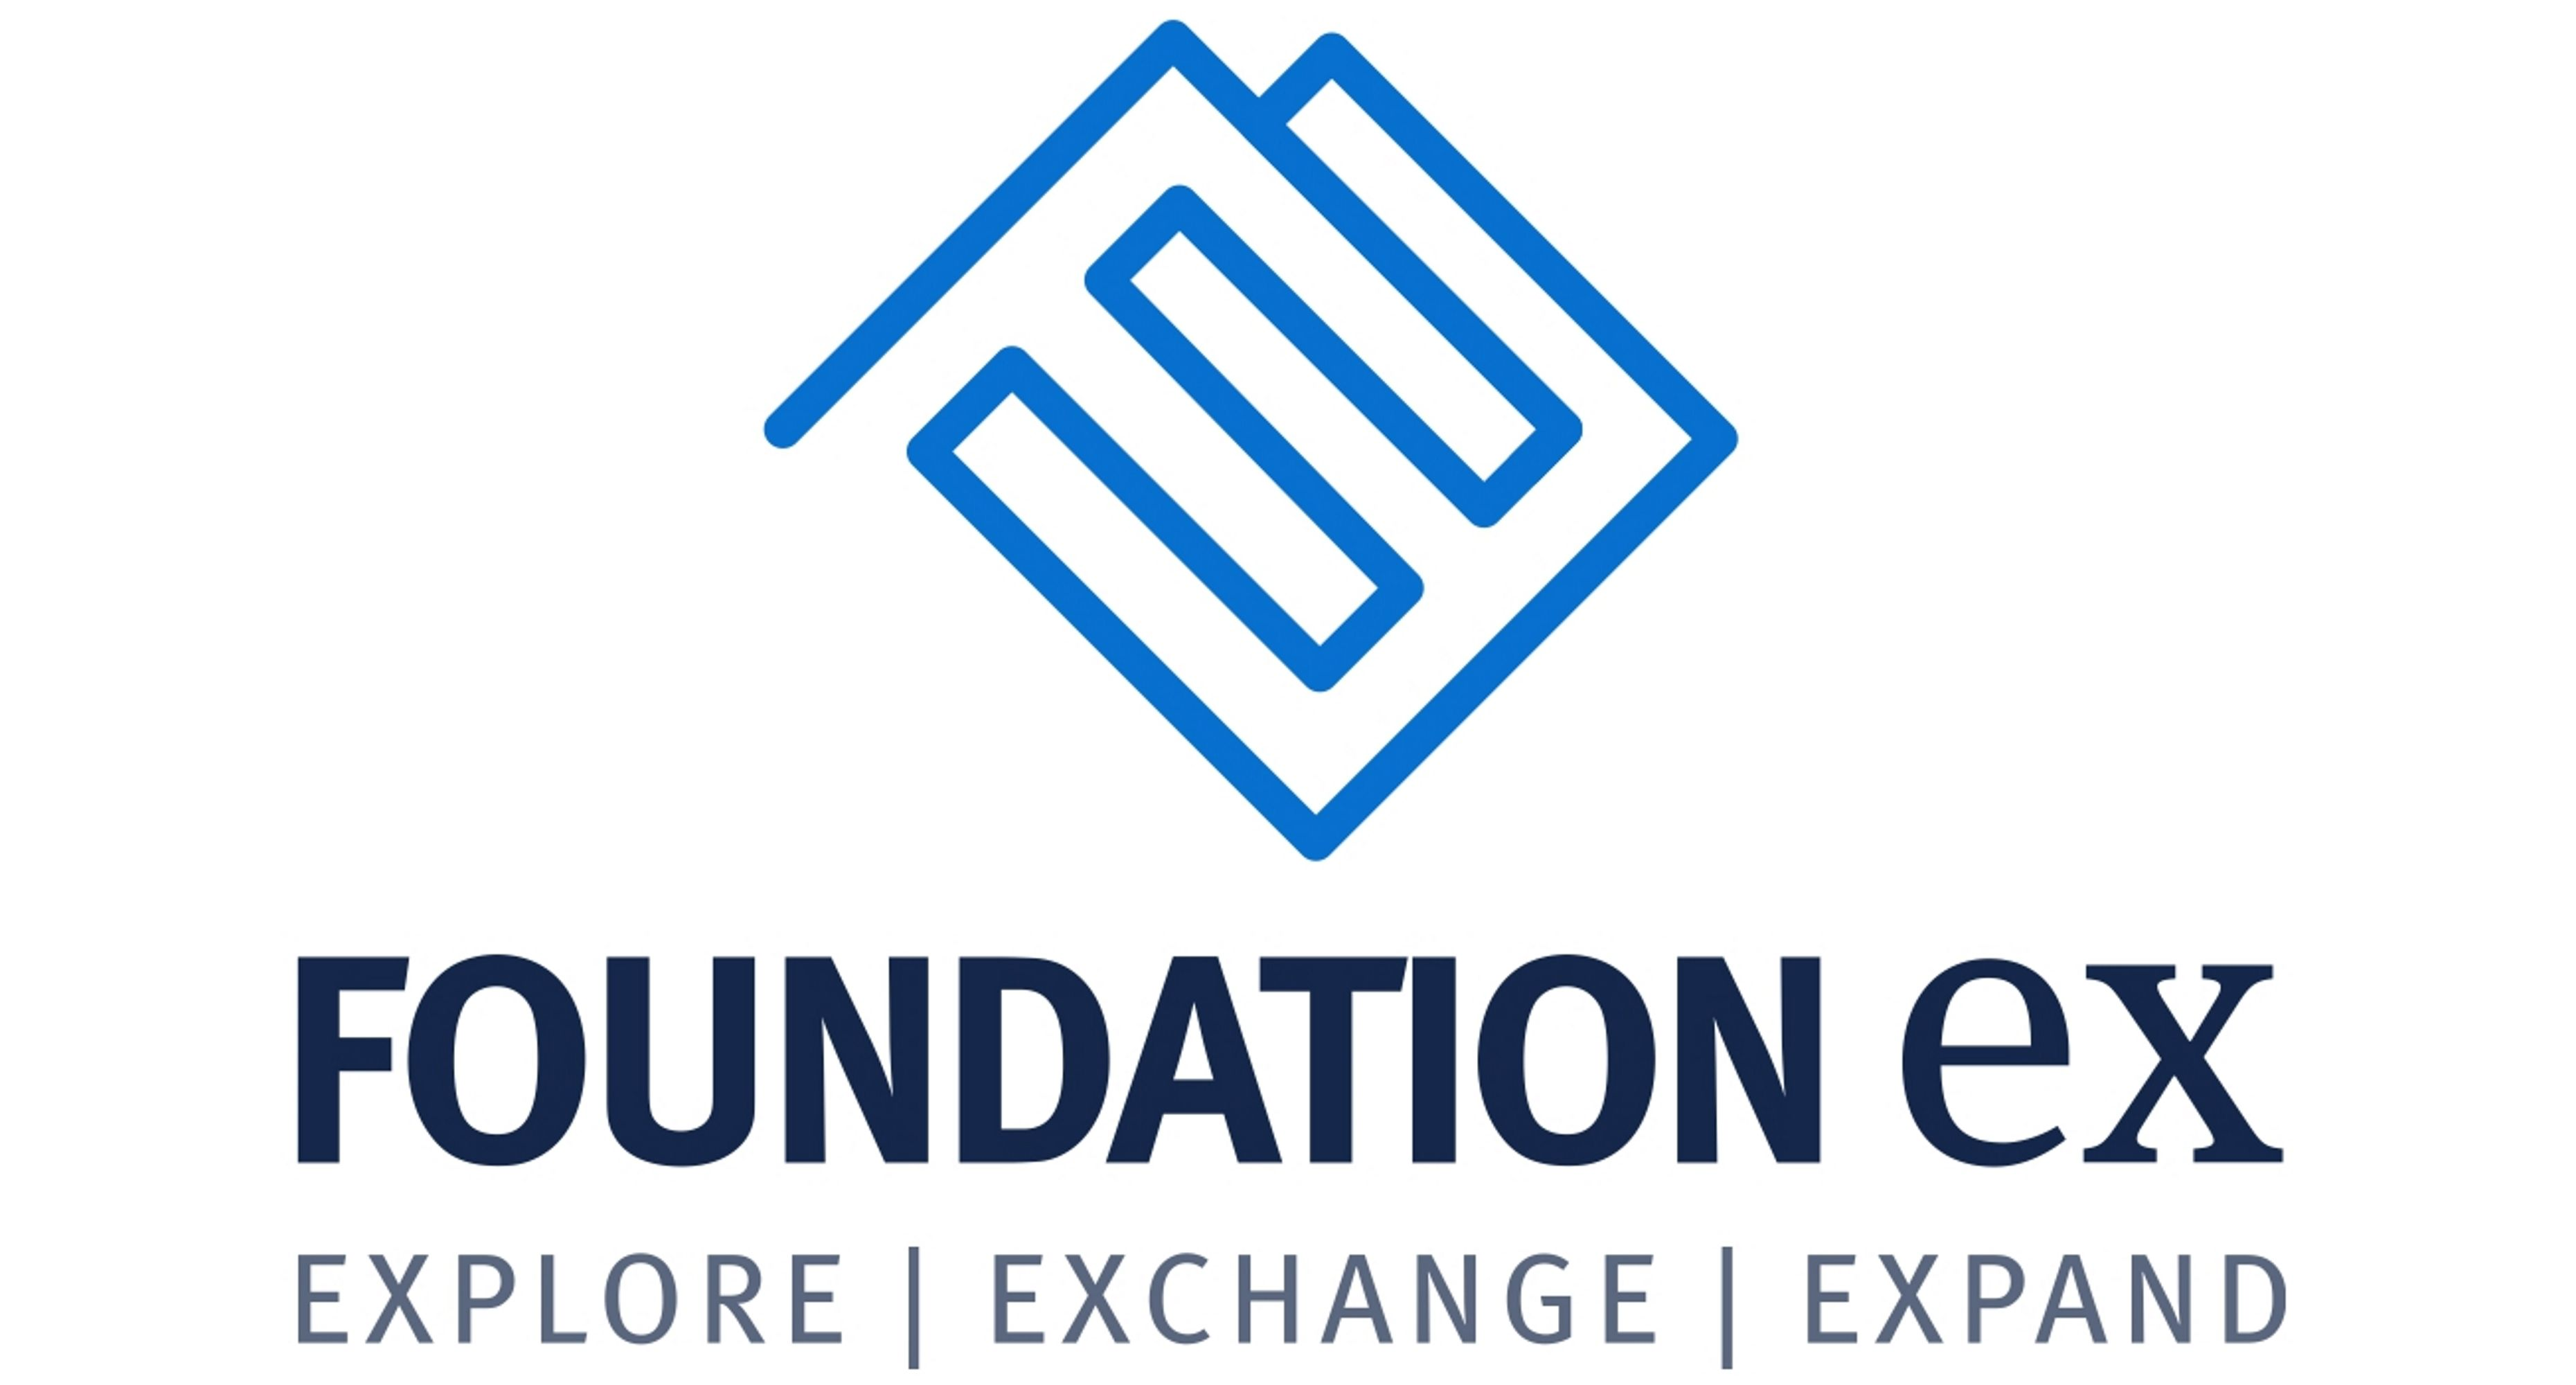 Looking forward to Foundation Ex 2020